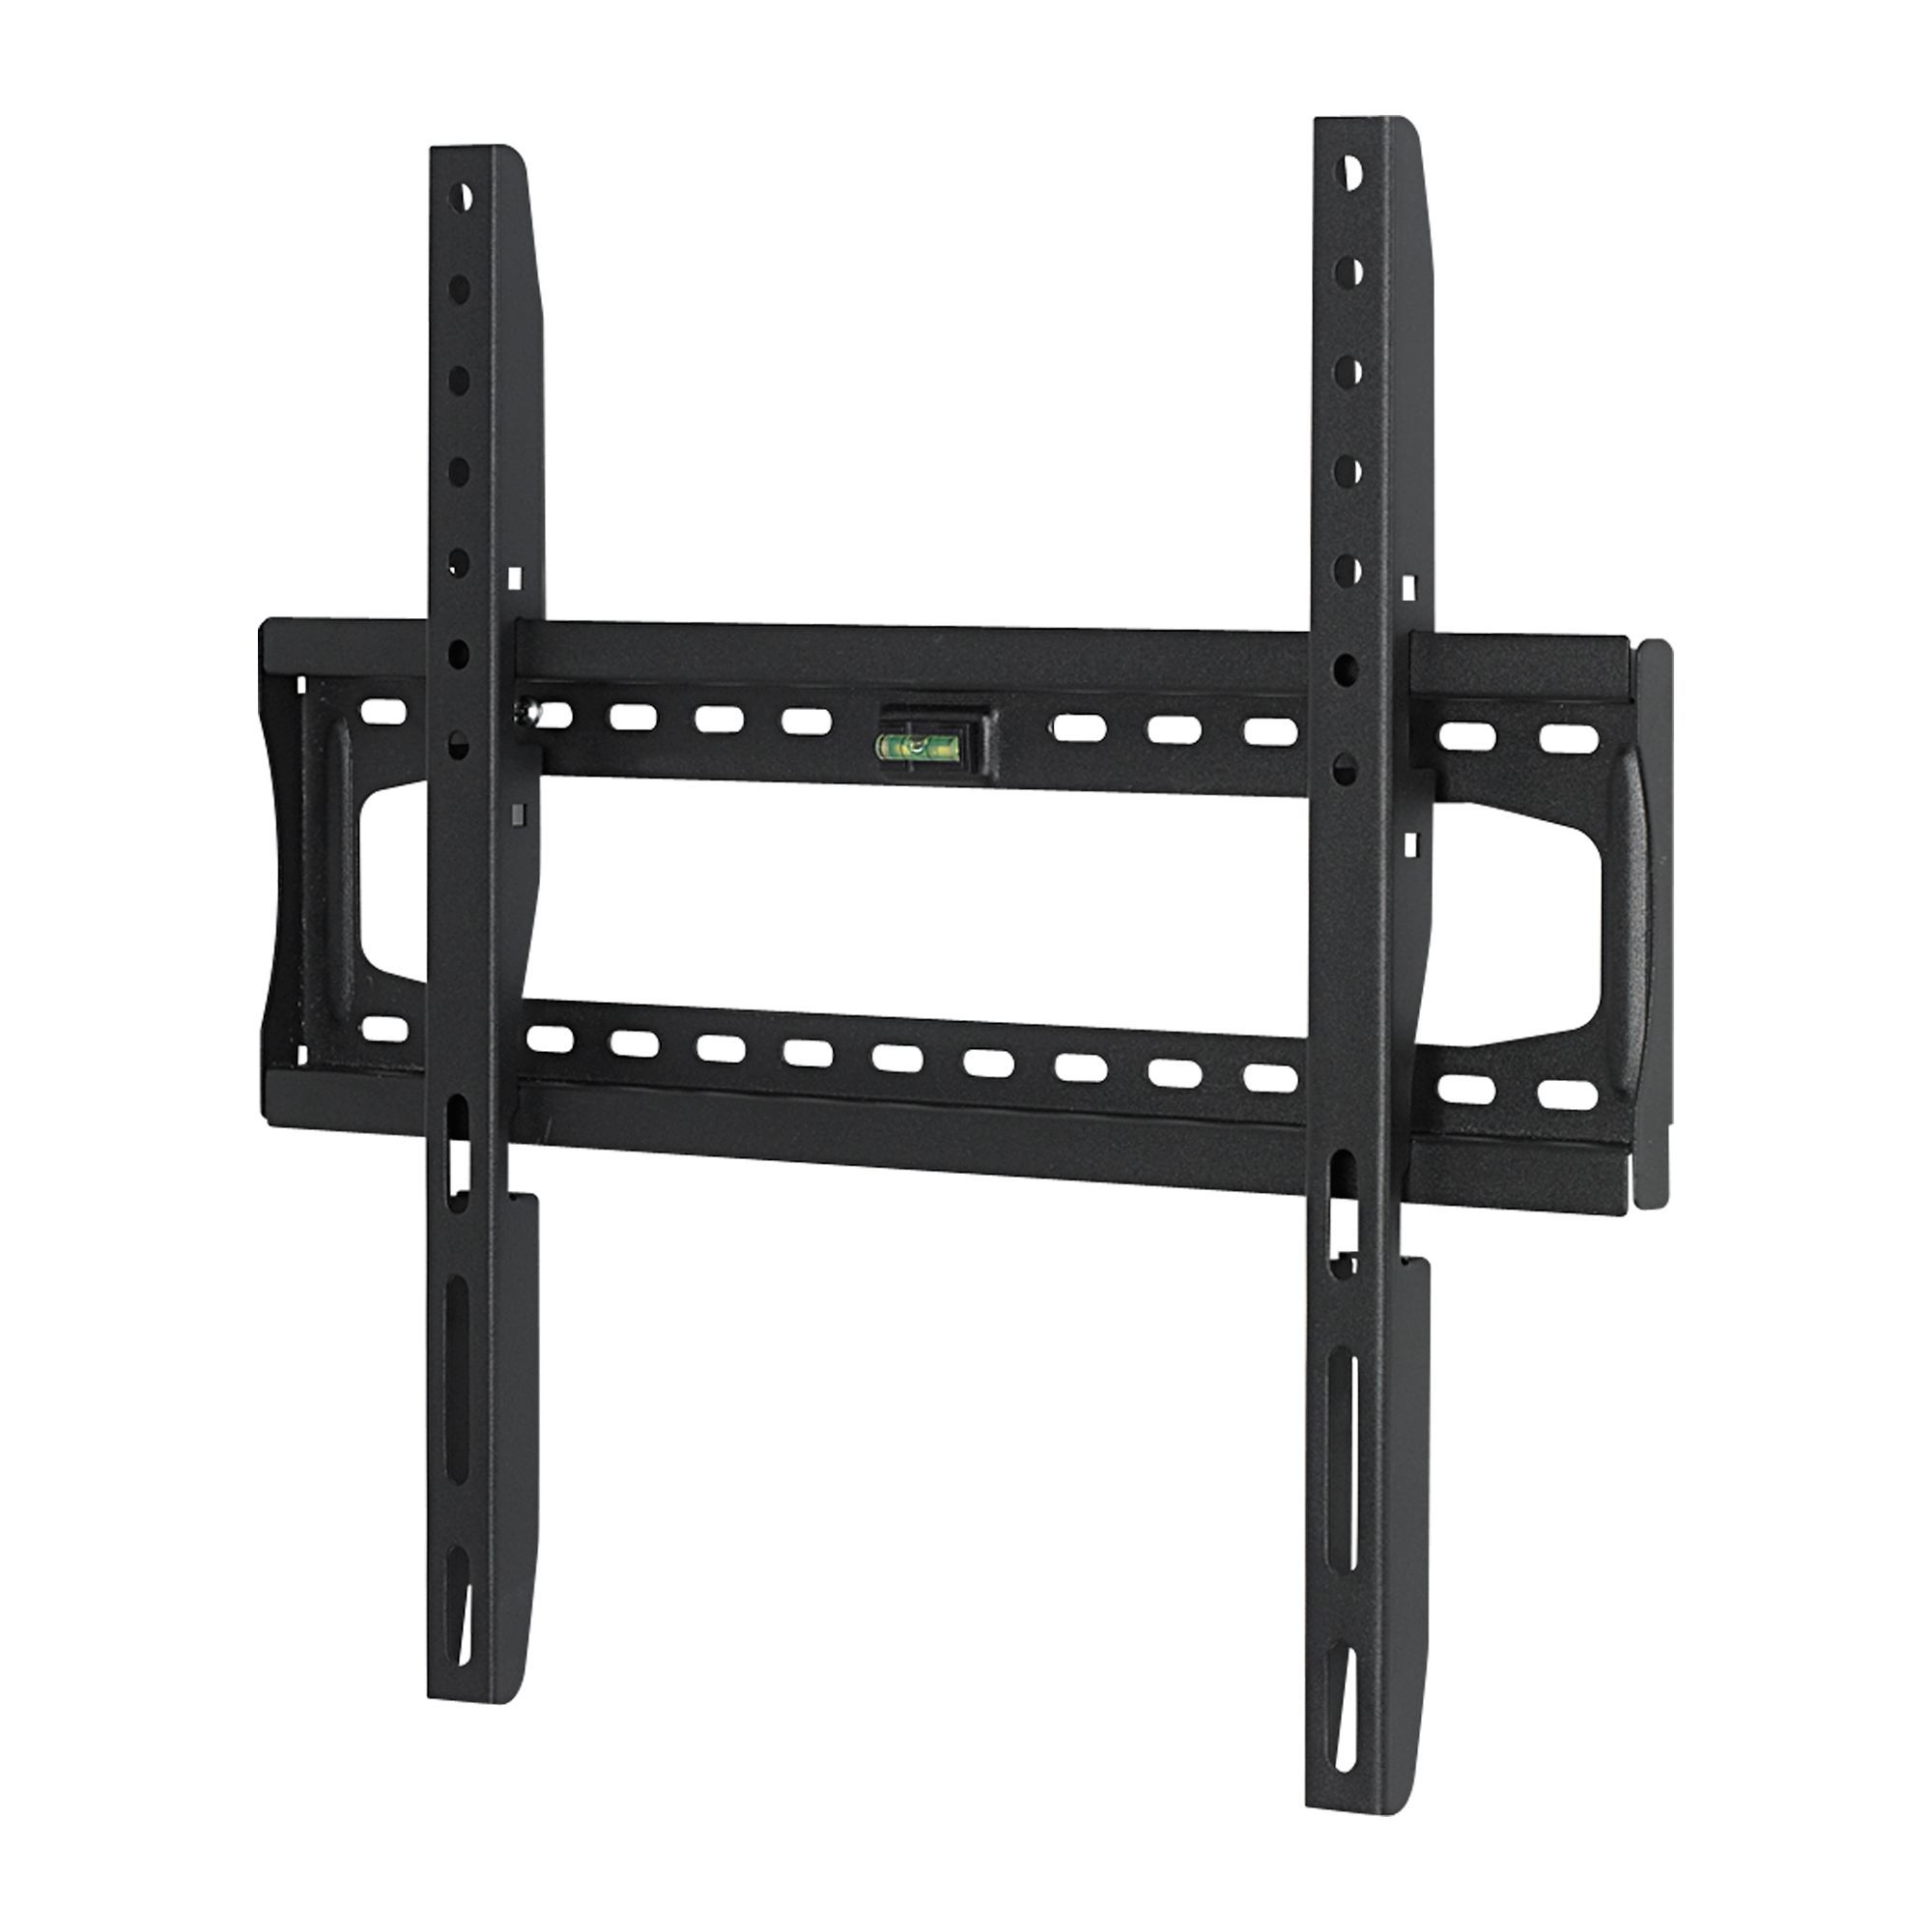 Ross Black Fixed Tv Mounting Bracket 32 50 Inches